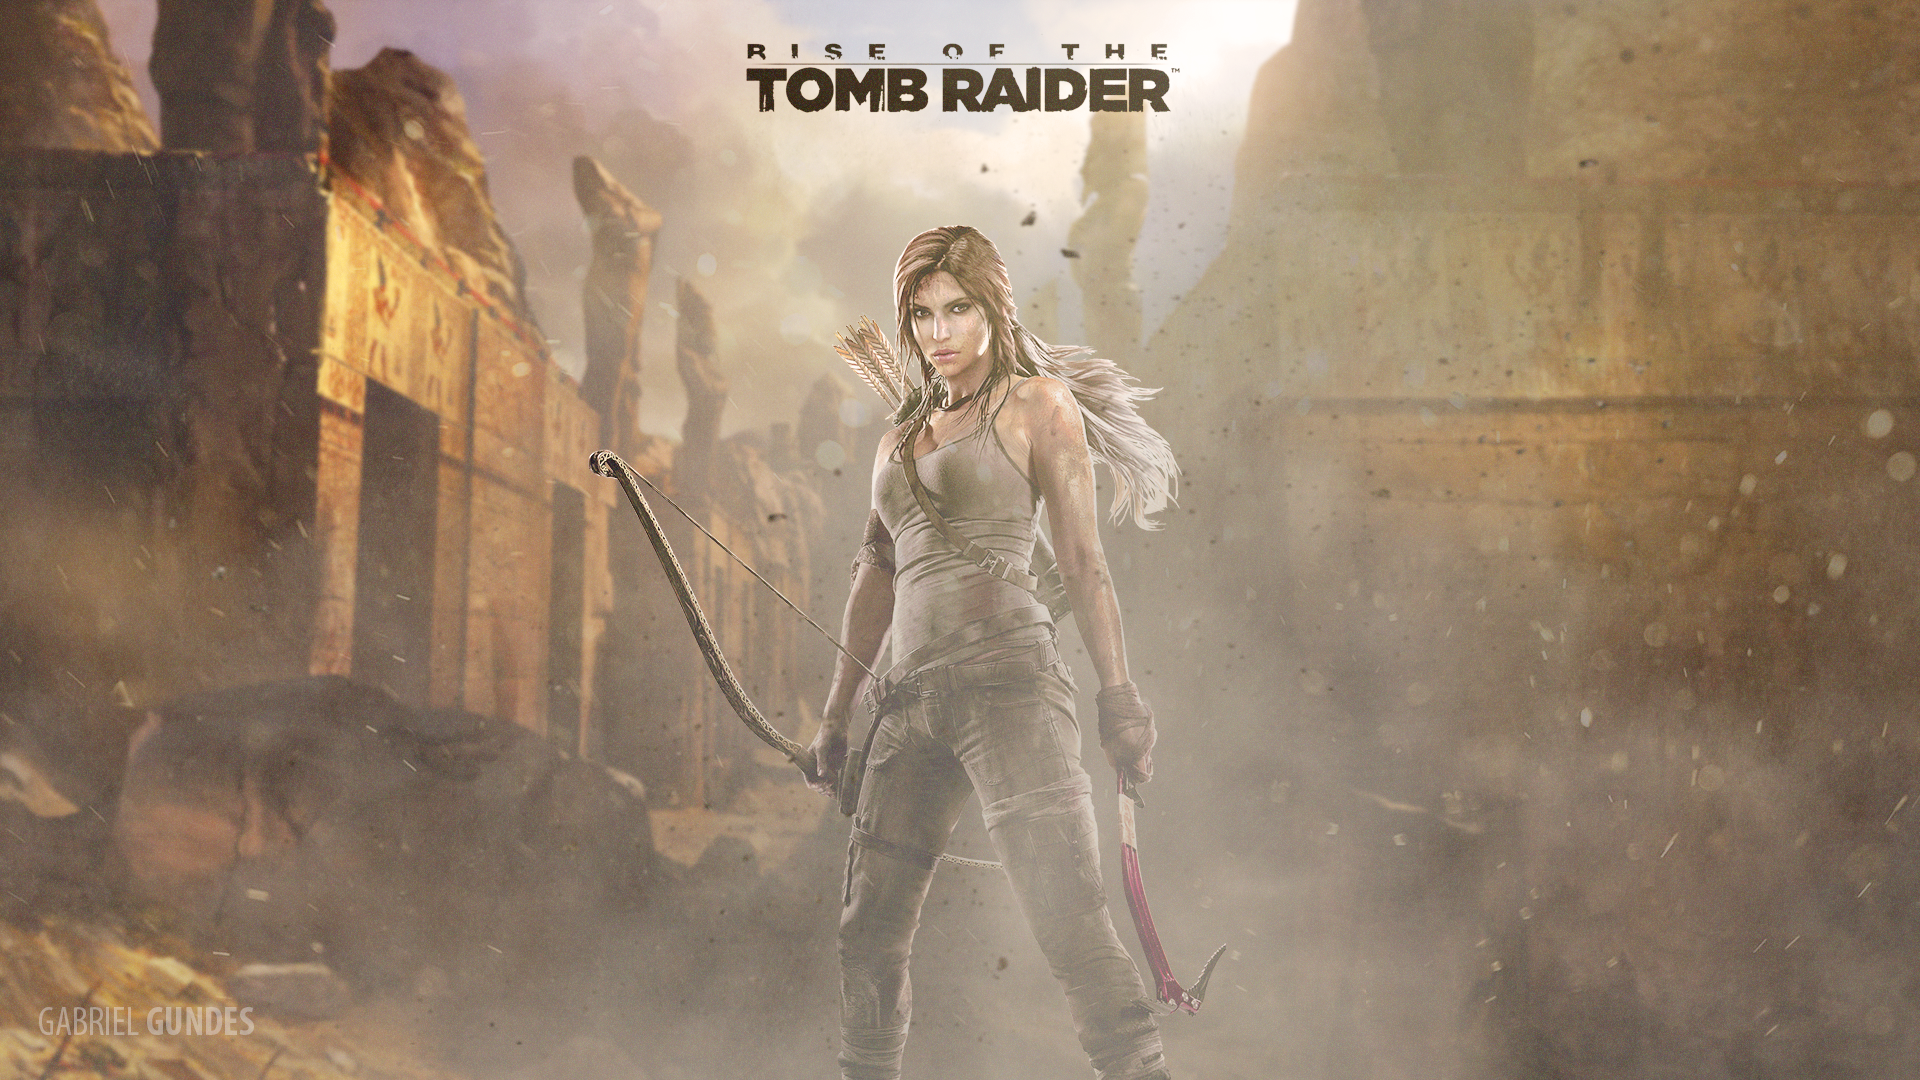 Rise Of The Tomb Raider Wallpaper 1920x1080 By Gabrielgundes